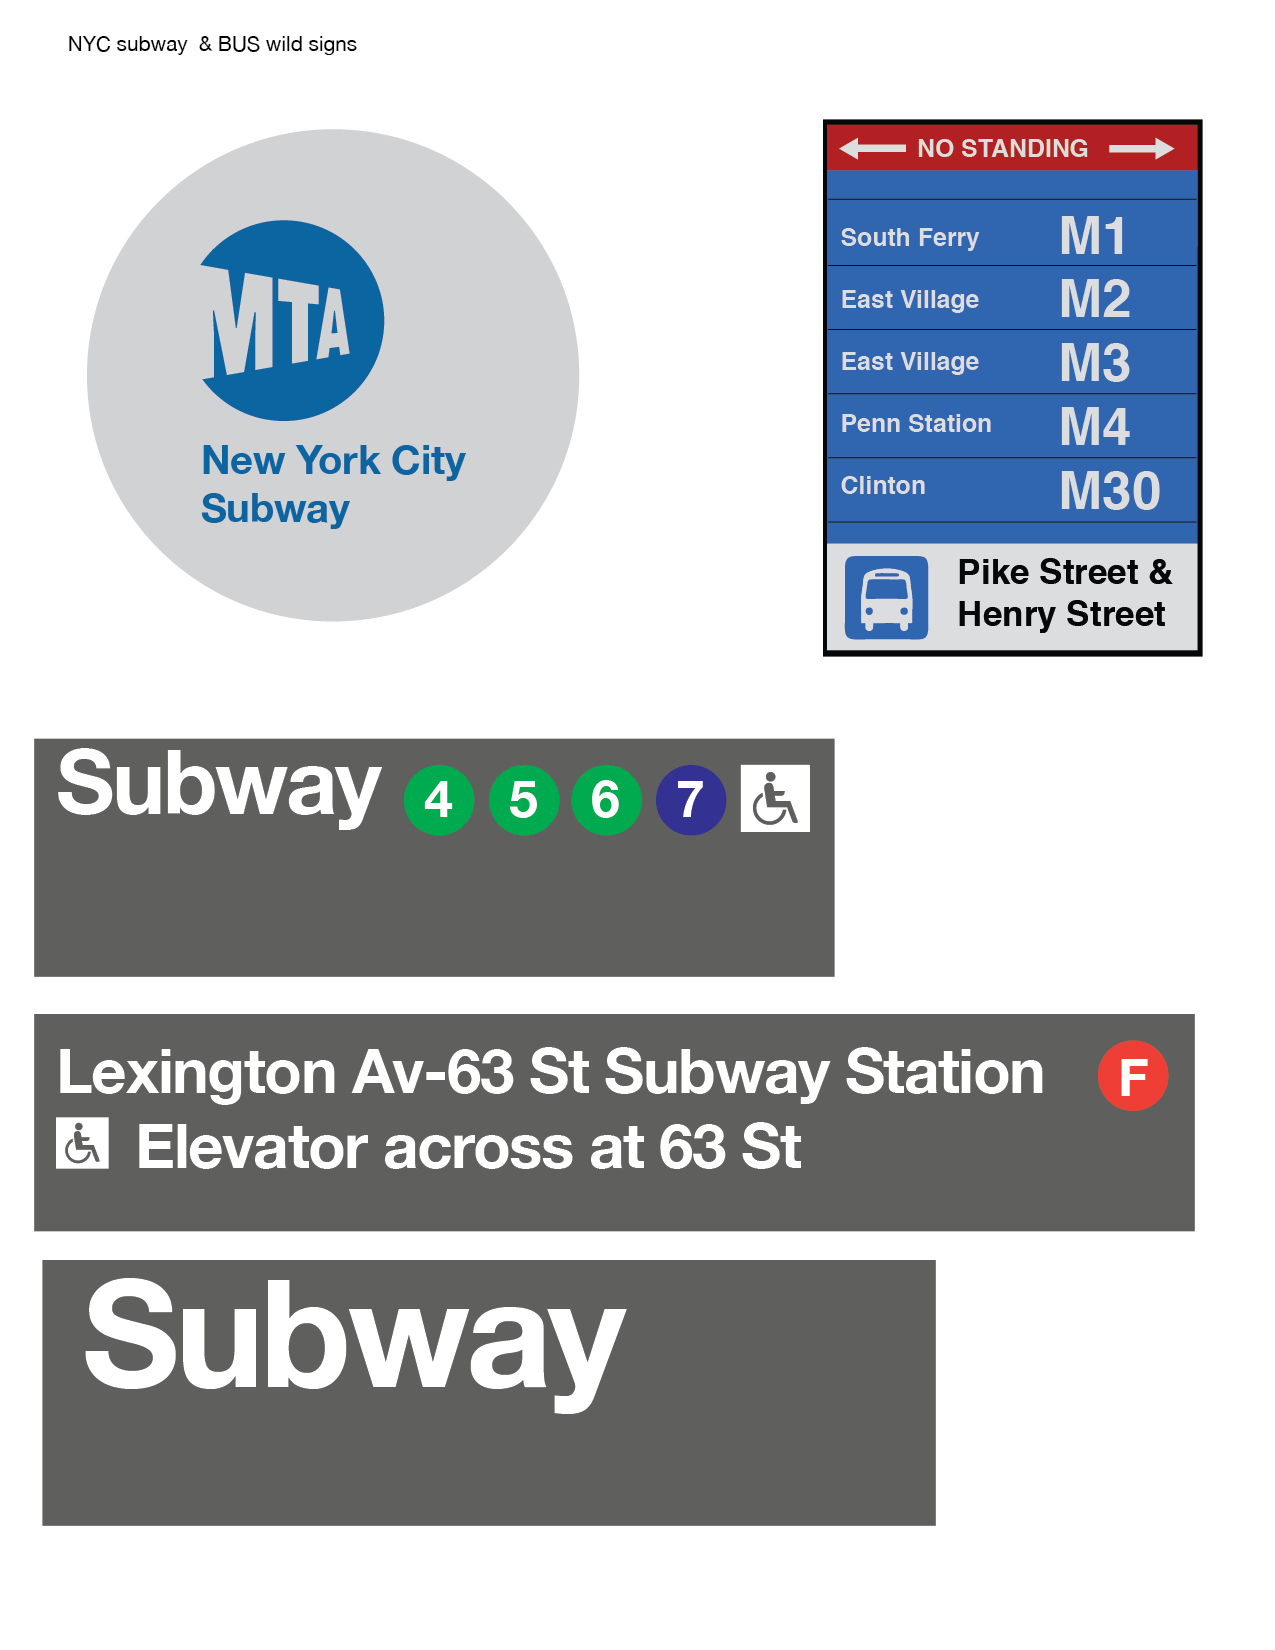 24_sUBWAY.png